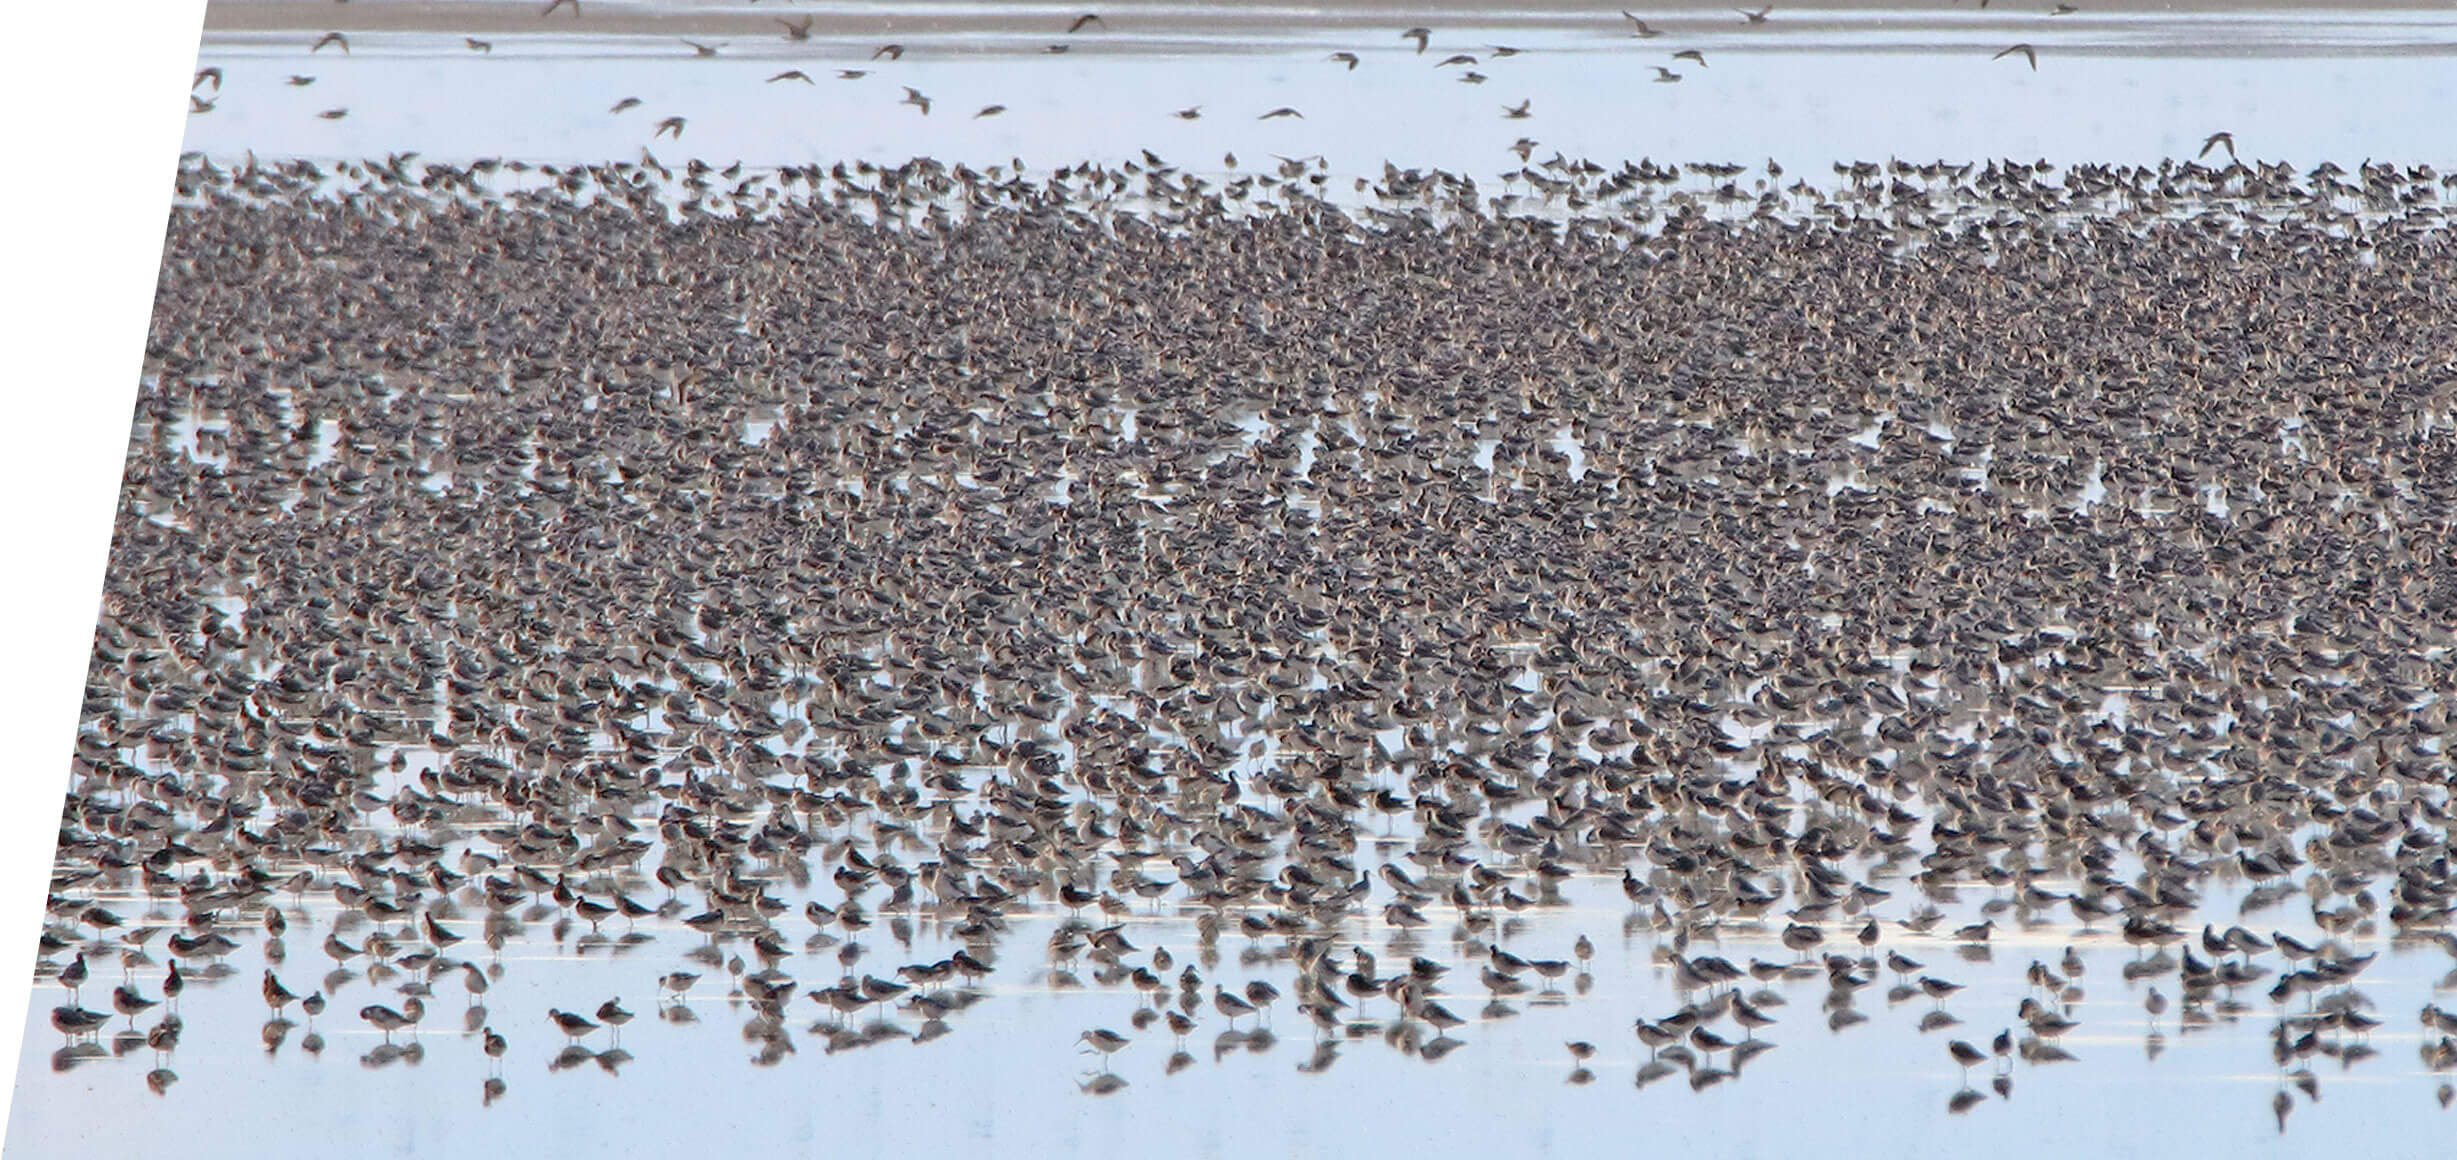 Wilson's and Red-necked Phalarope migration on the Great Salt Lake in 2018